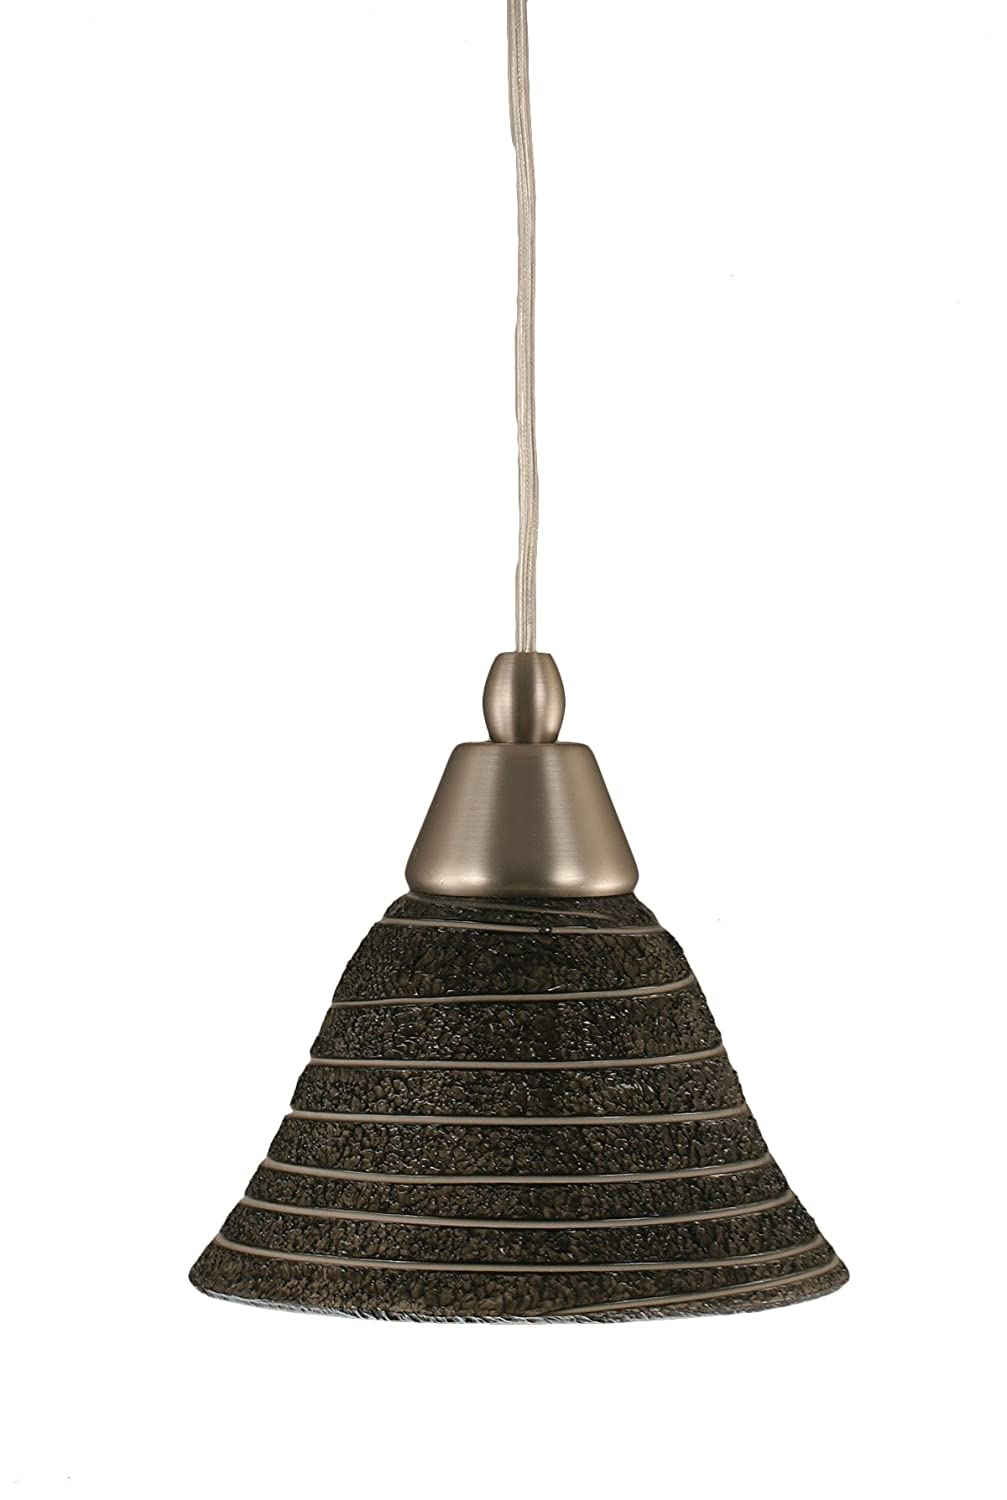 Toltec Lighting 22-BN-451 Cord Mini-Pendant Light Brushed Nickel Finish with Bubble Glass 7-Inch